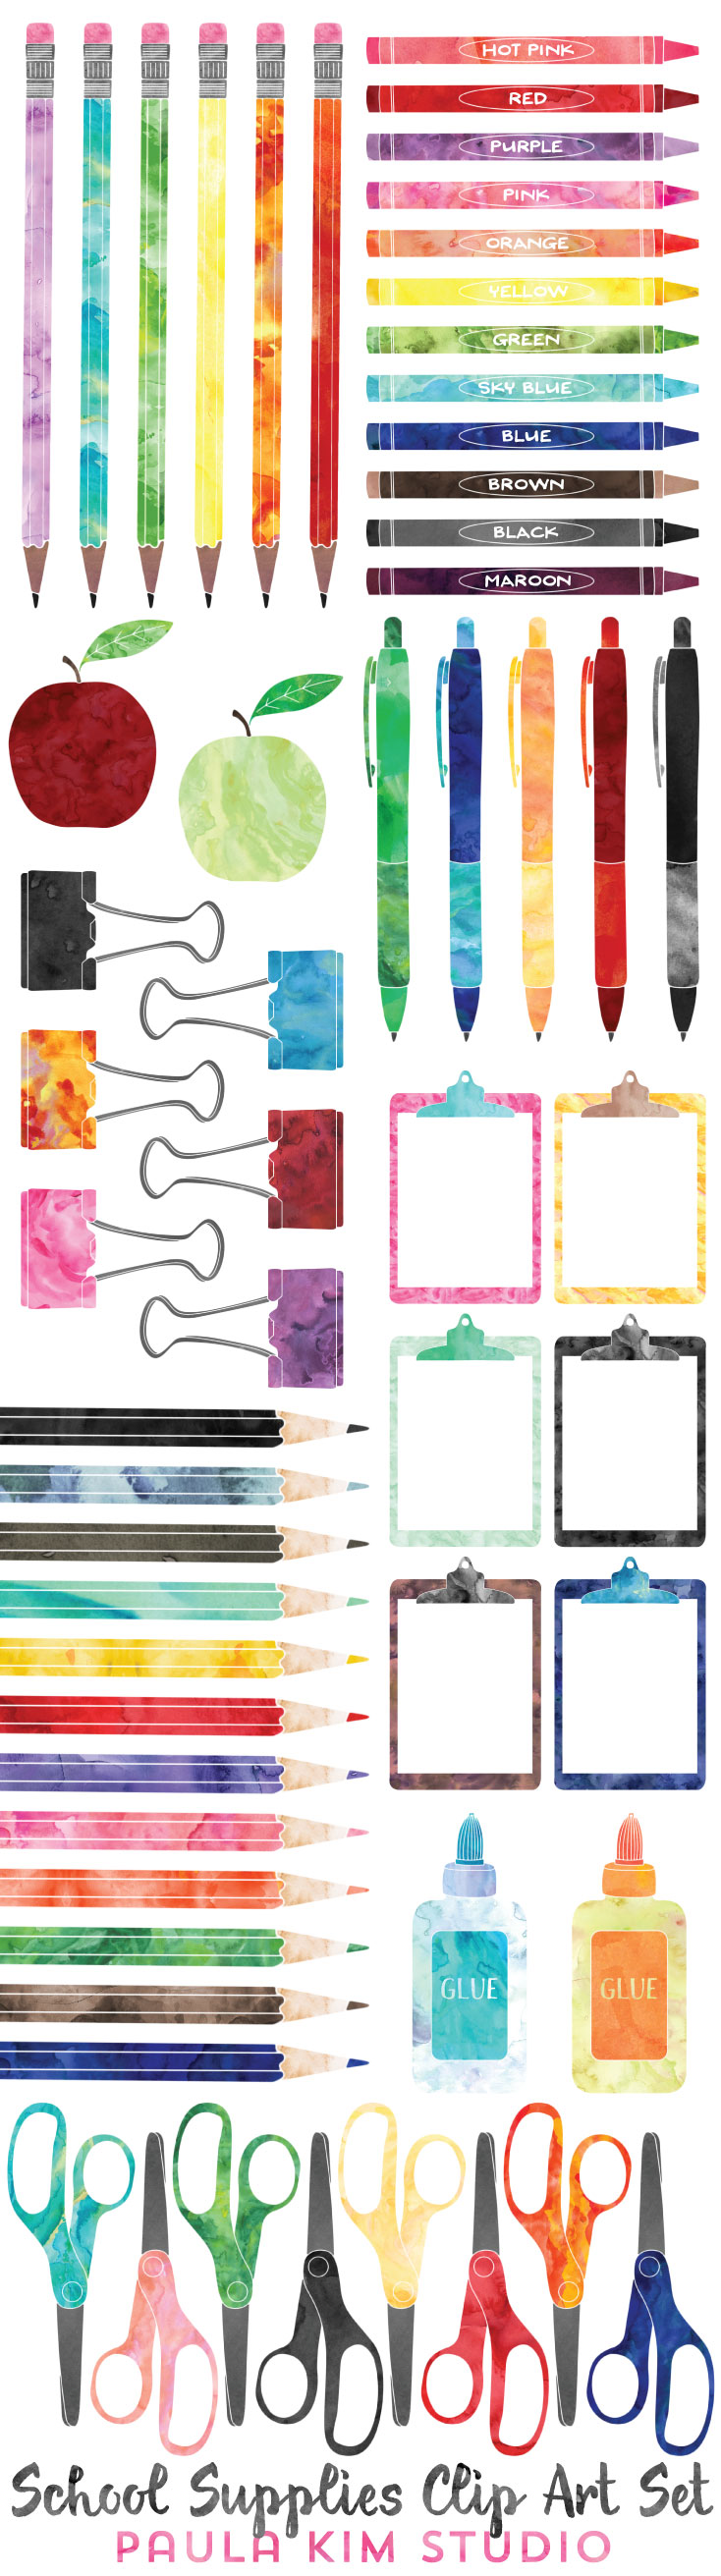 School supplies clip art clip art school and branding ideas beautiful watercolor clip art set of school supplies educational commercial use allowed you can voltagebd Image collections